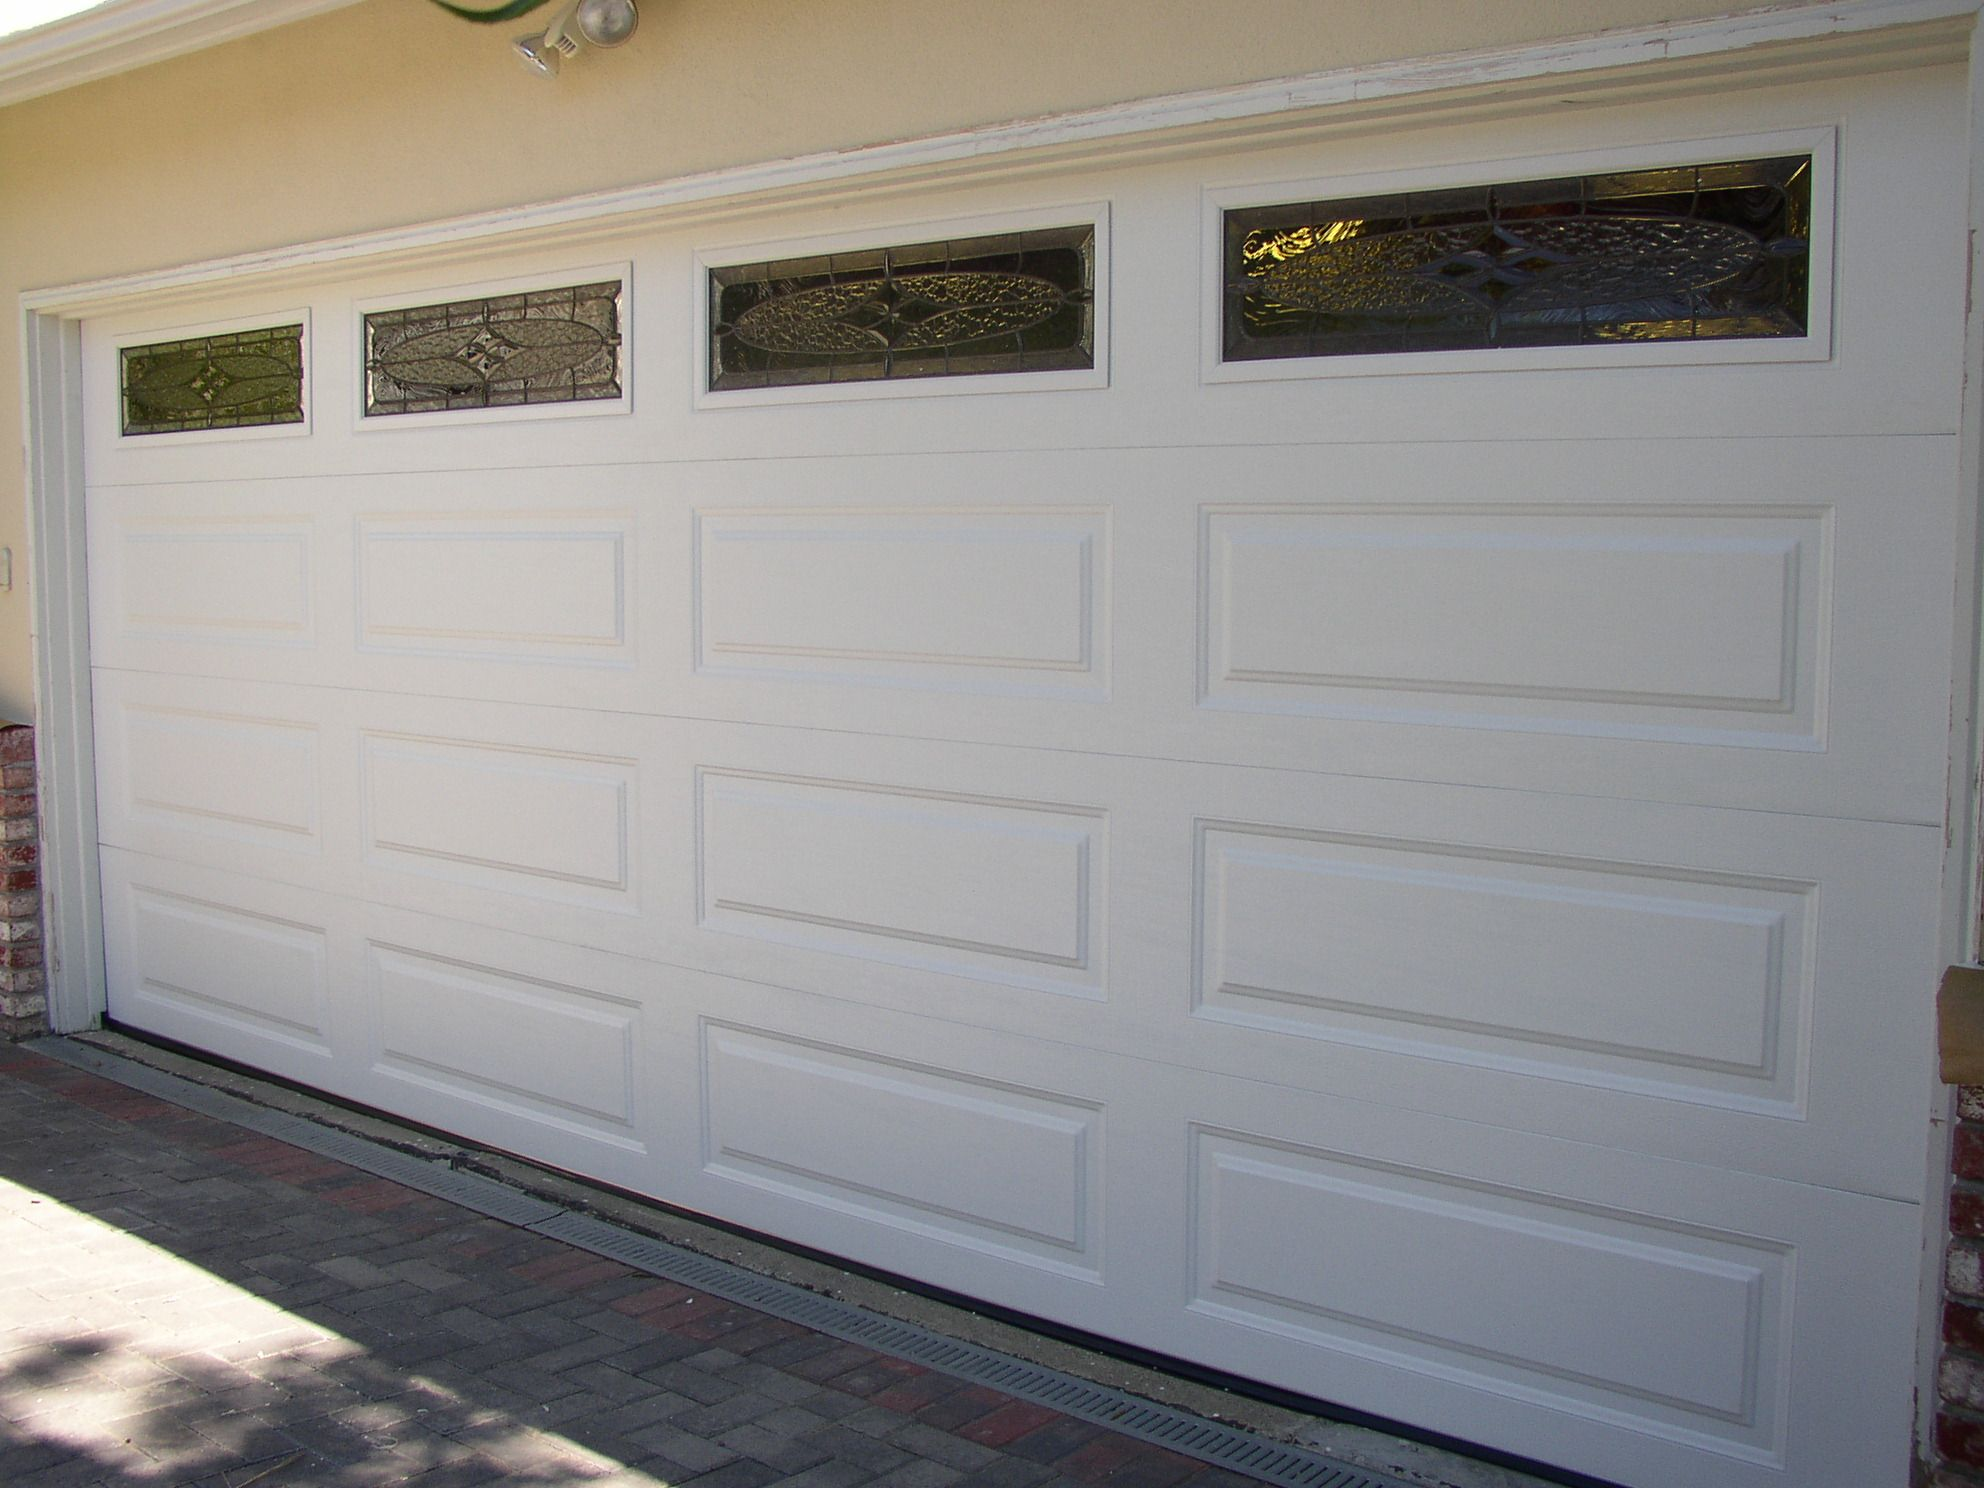 Clopay Garage Doors Replacement Parts Read Full Article Here Http Www Entrydoorwithsidelights Com Garage Doors Garage Door Windows Wood Garage Doors